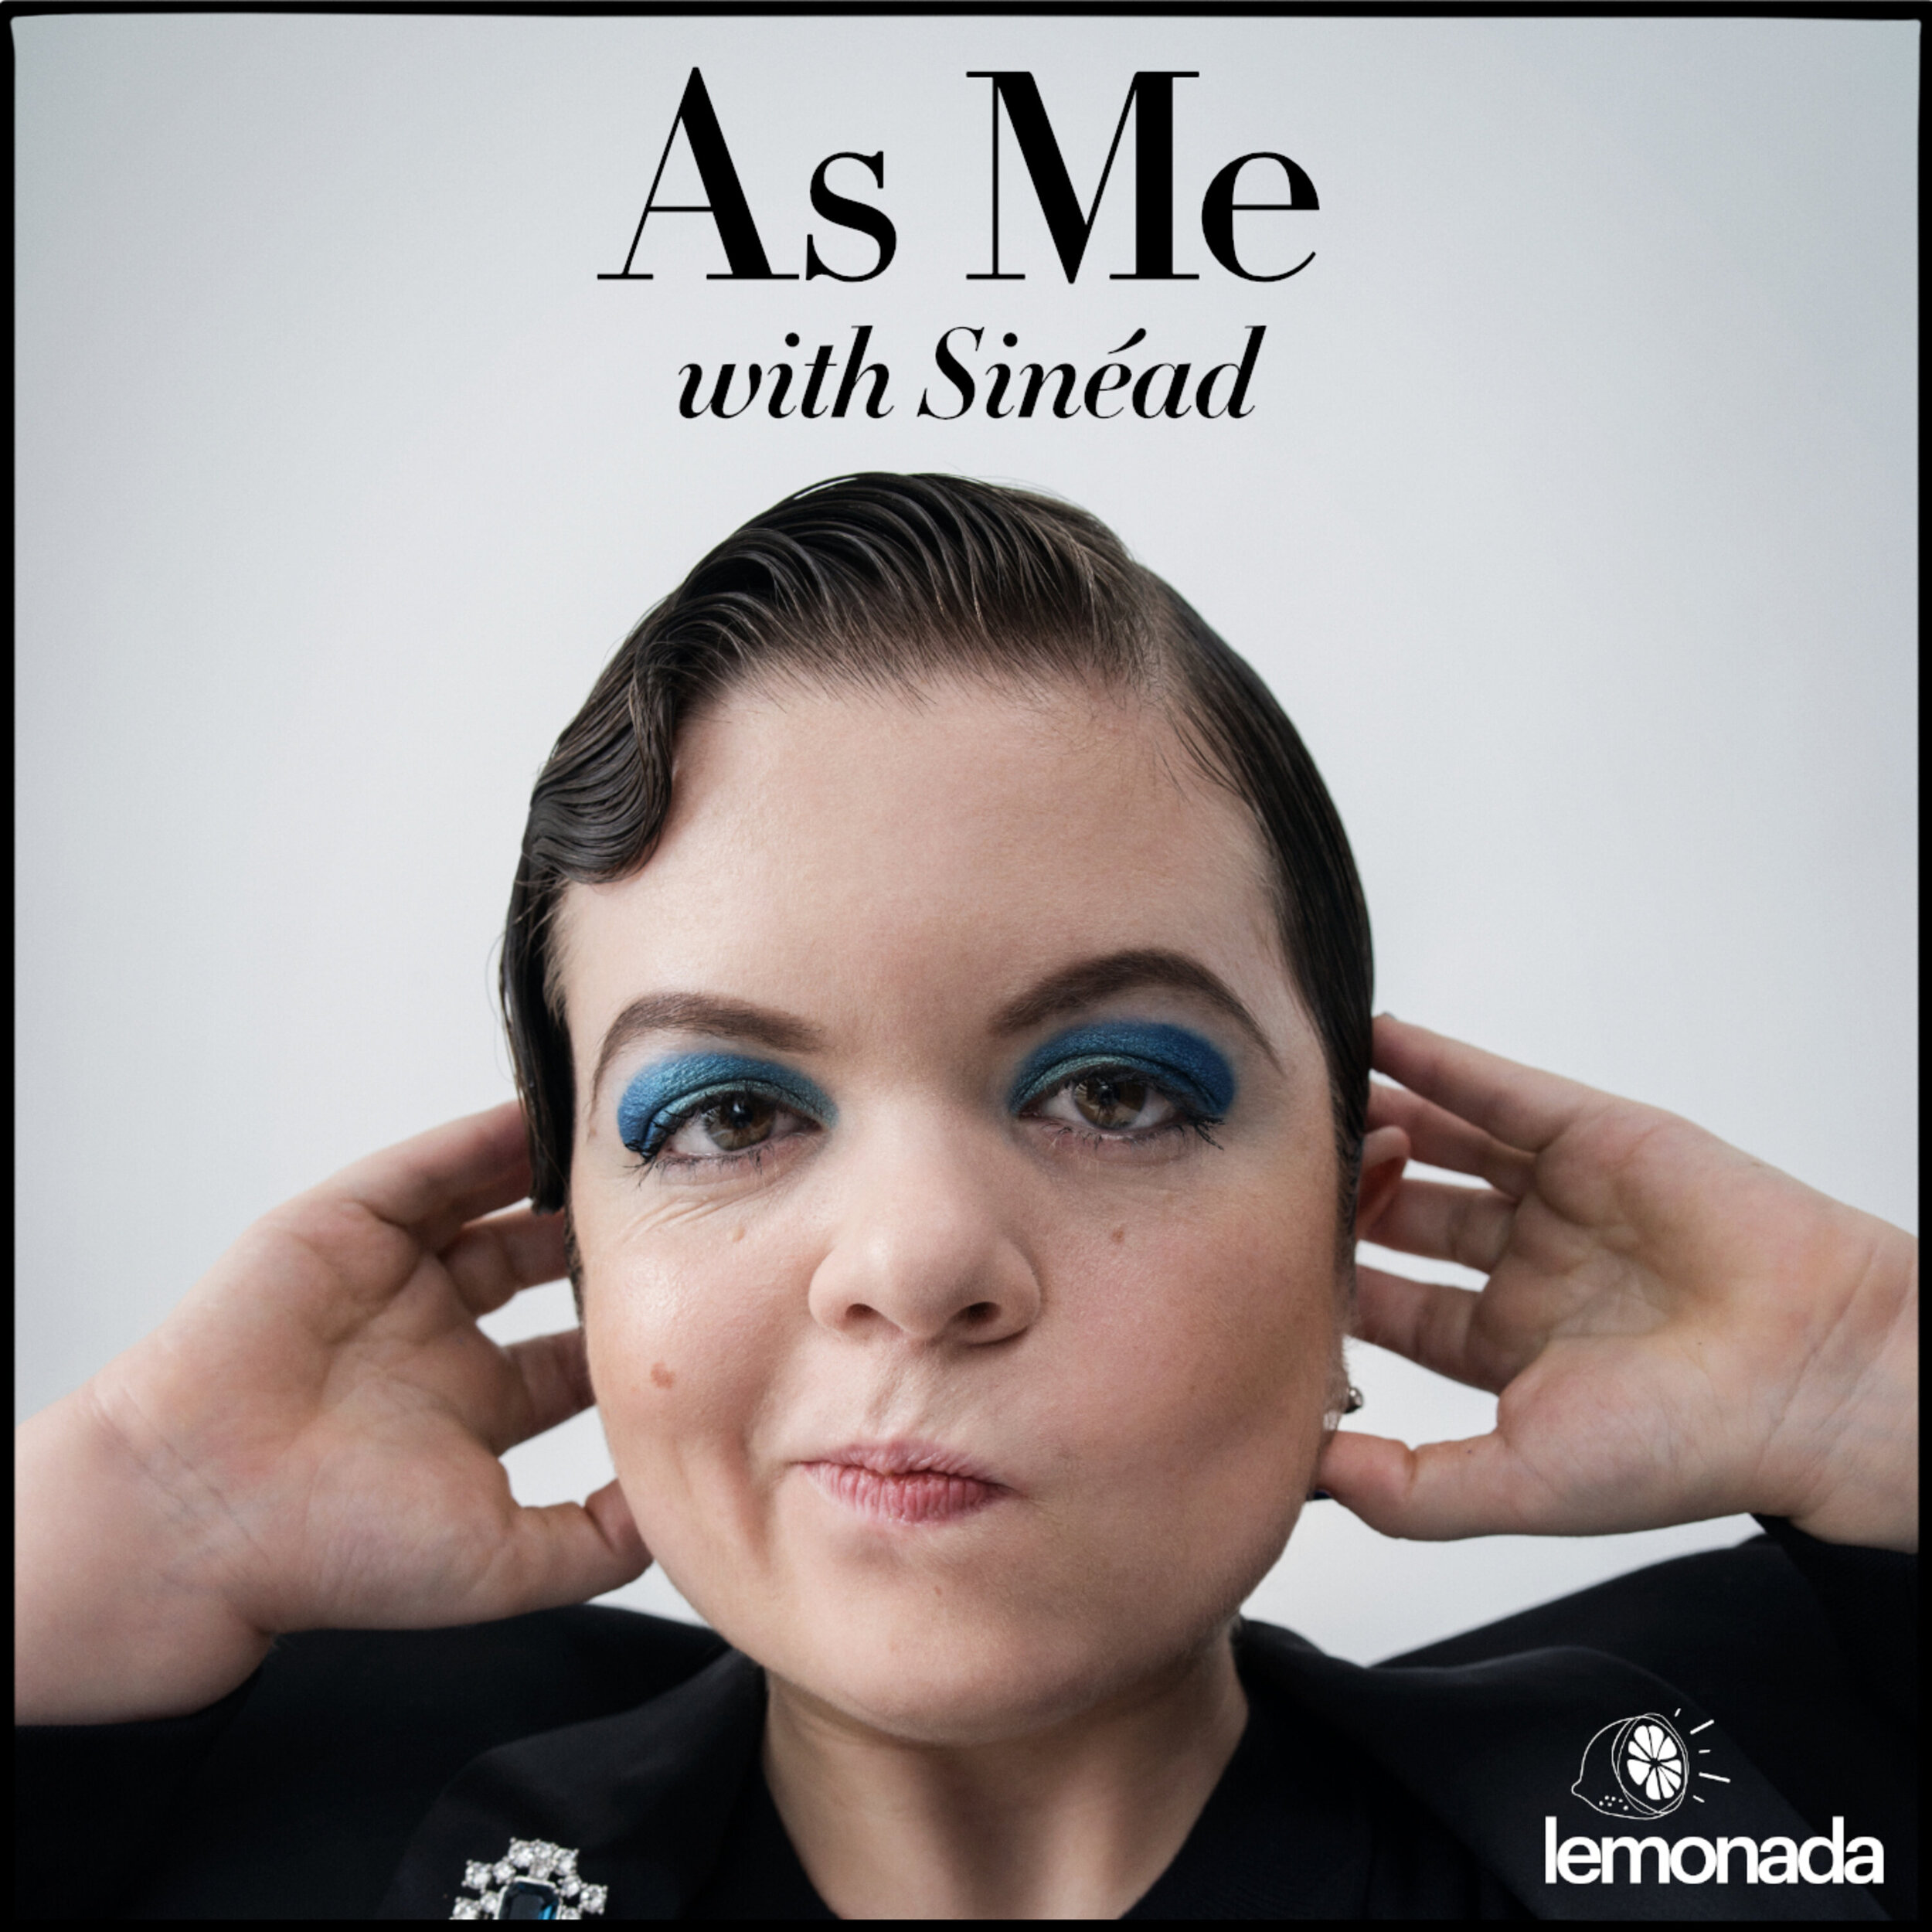 Your next listen from Stacie + Meghan of Didn't I Just Feed You: As Me with Sinead from Lemonada Media